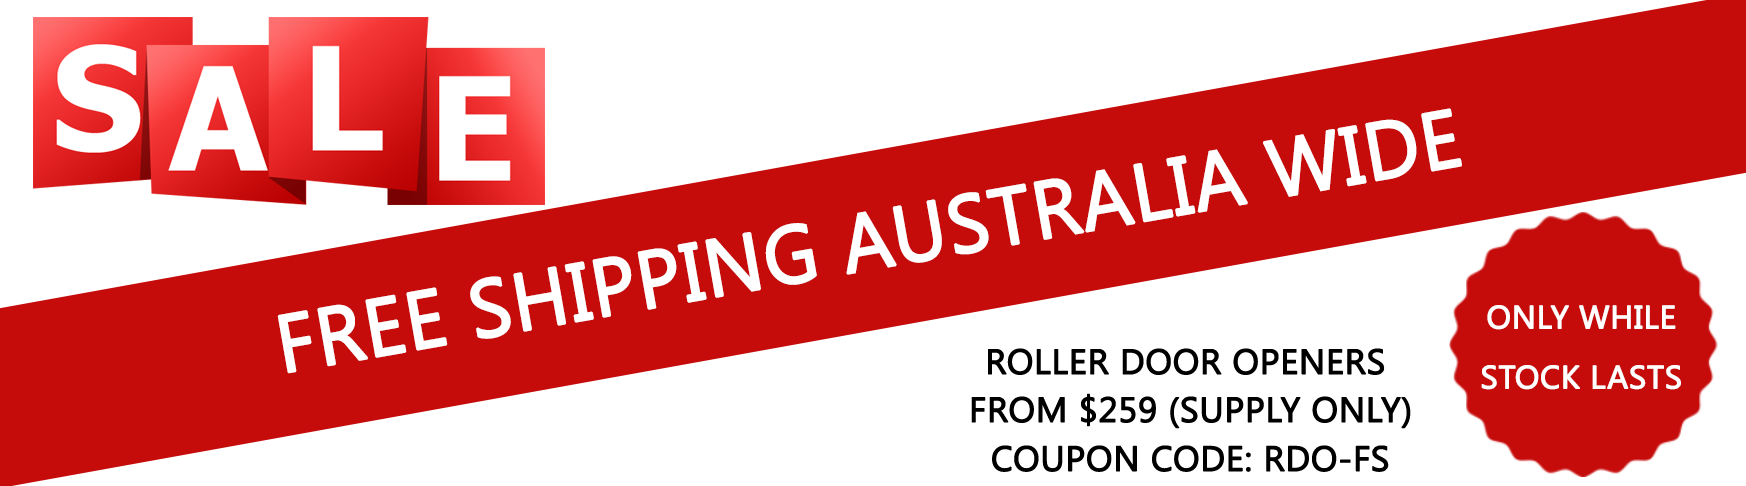 Roller garage door openers special offer- free shipping Australia